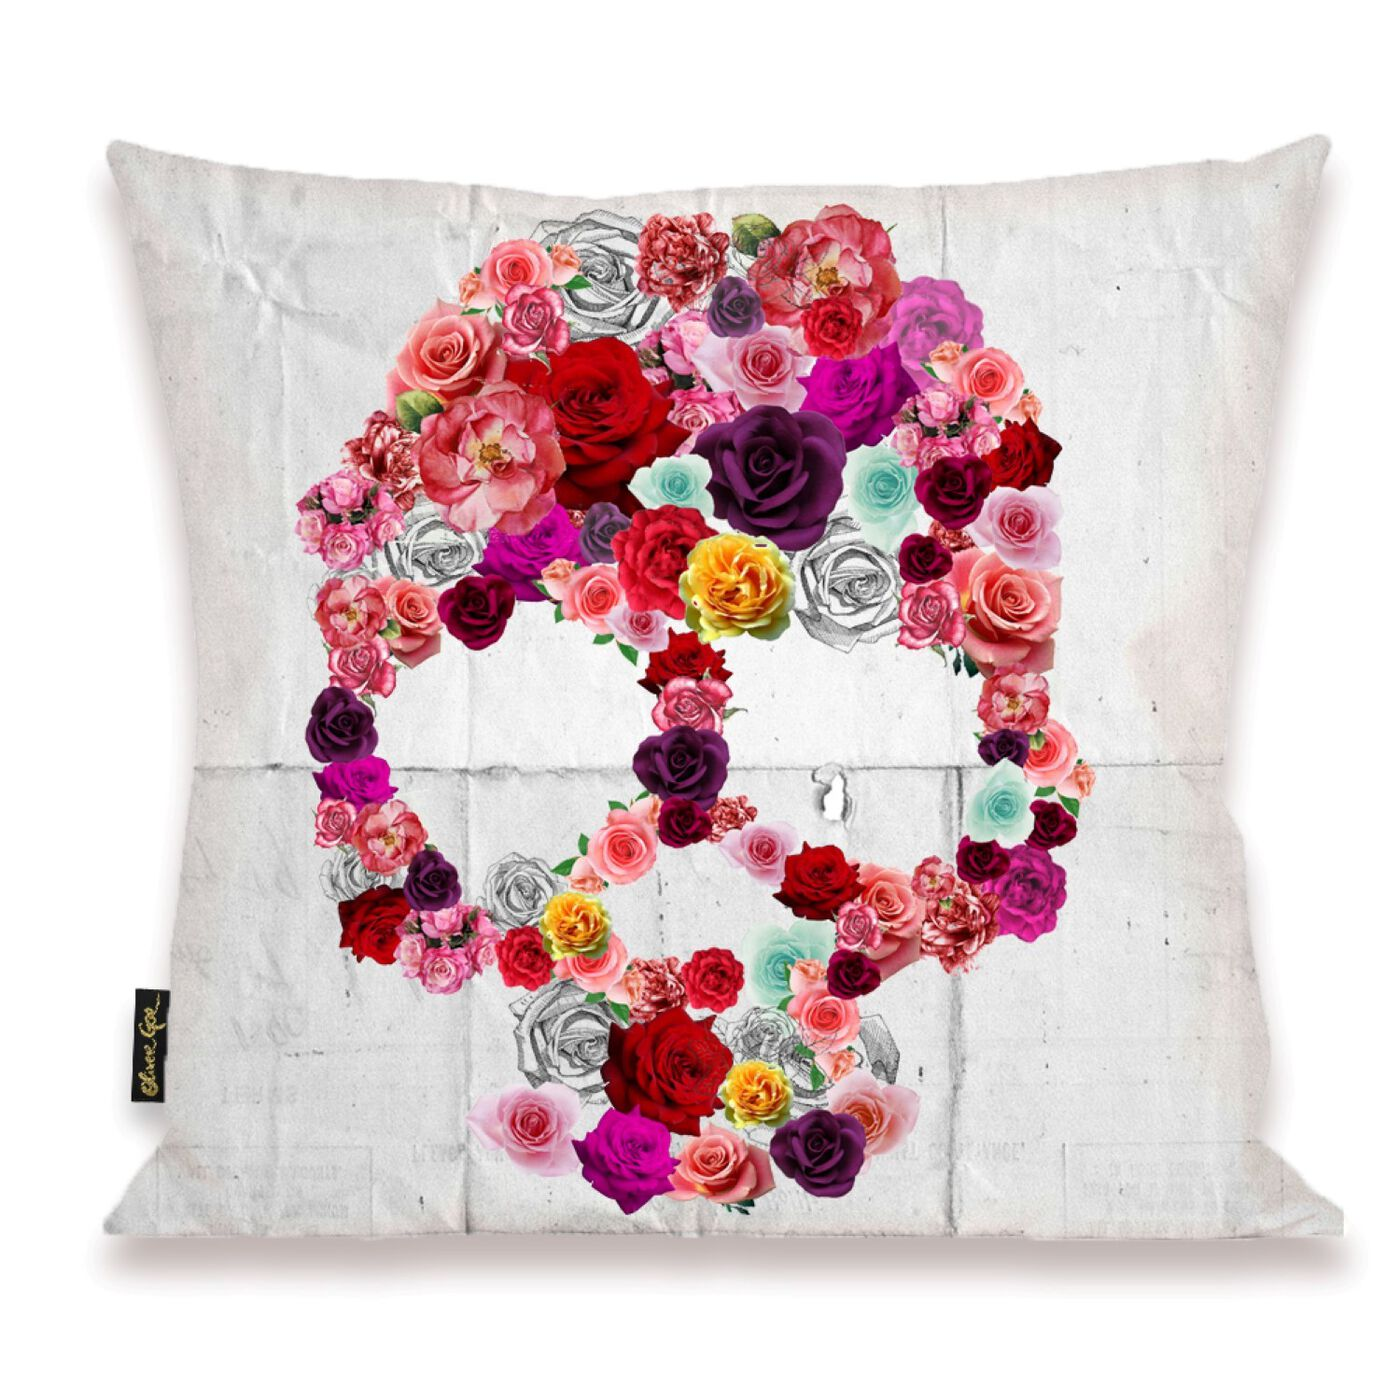 Bed of Roses Pillow